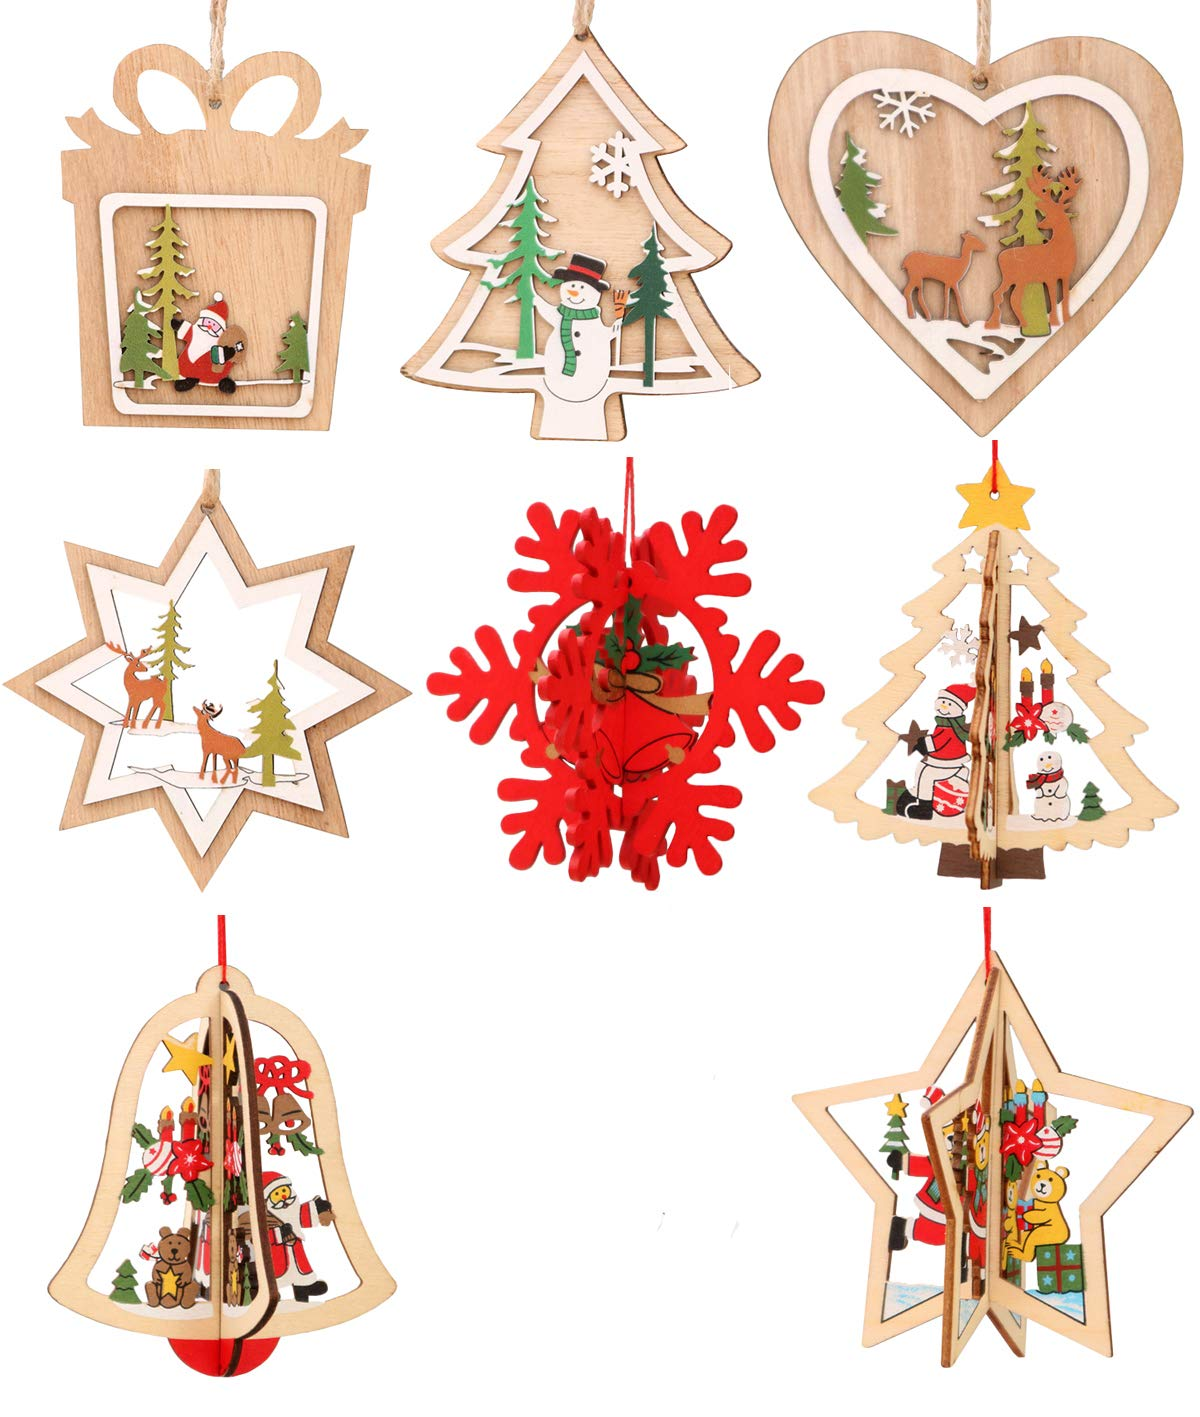 Hanging Christmas Decorations.Ironbuddy Christmas Tree Hanging Ornaments Decorations Wooden Hanging Tags Pendant Ornaments For Christmas Decorations Pack Of 8